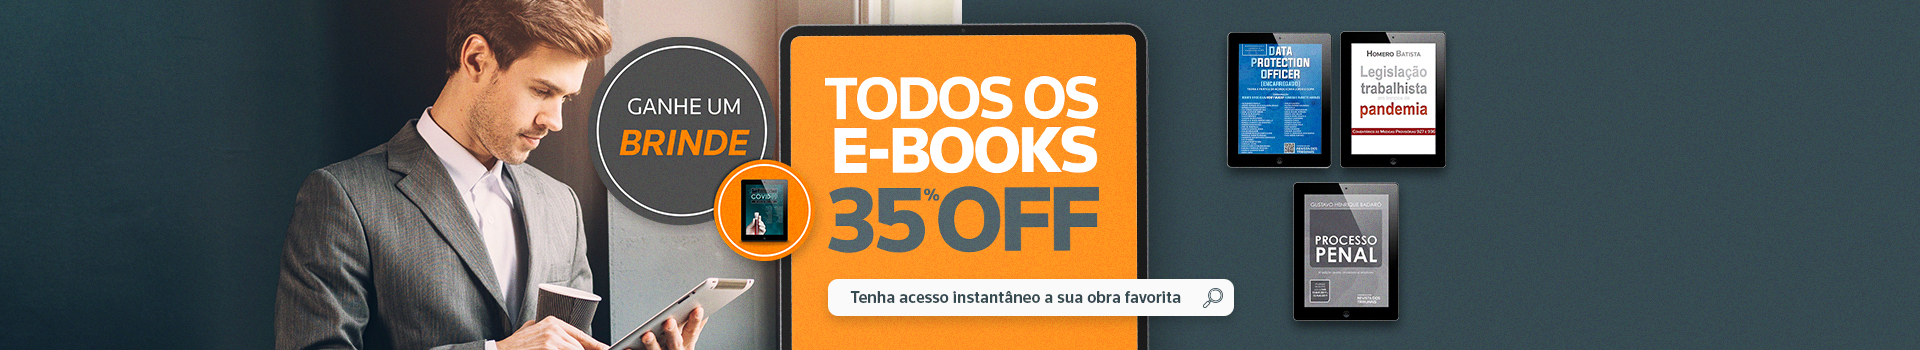 E-books 35%OFF